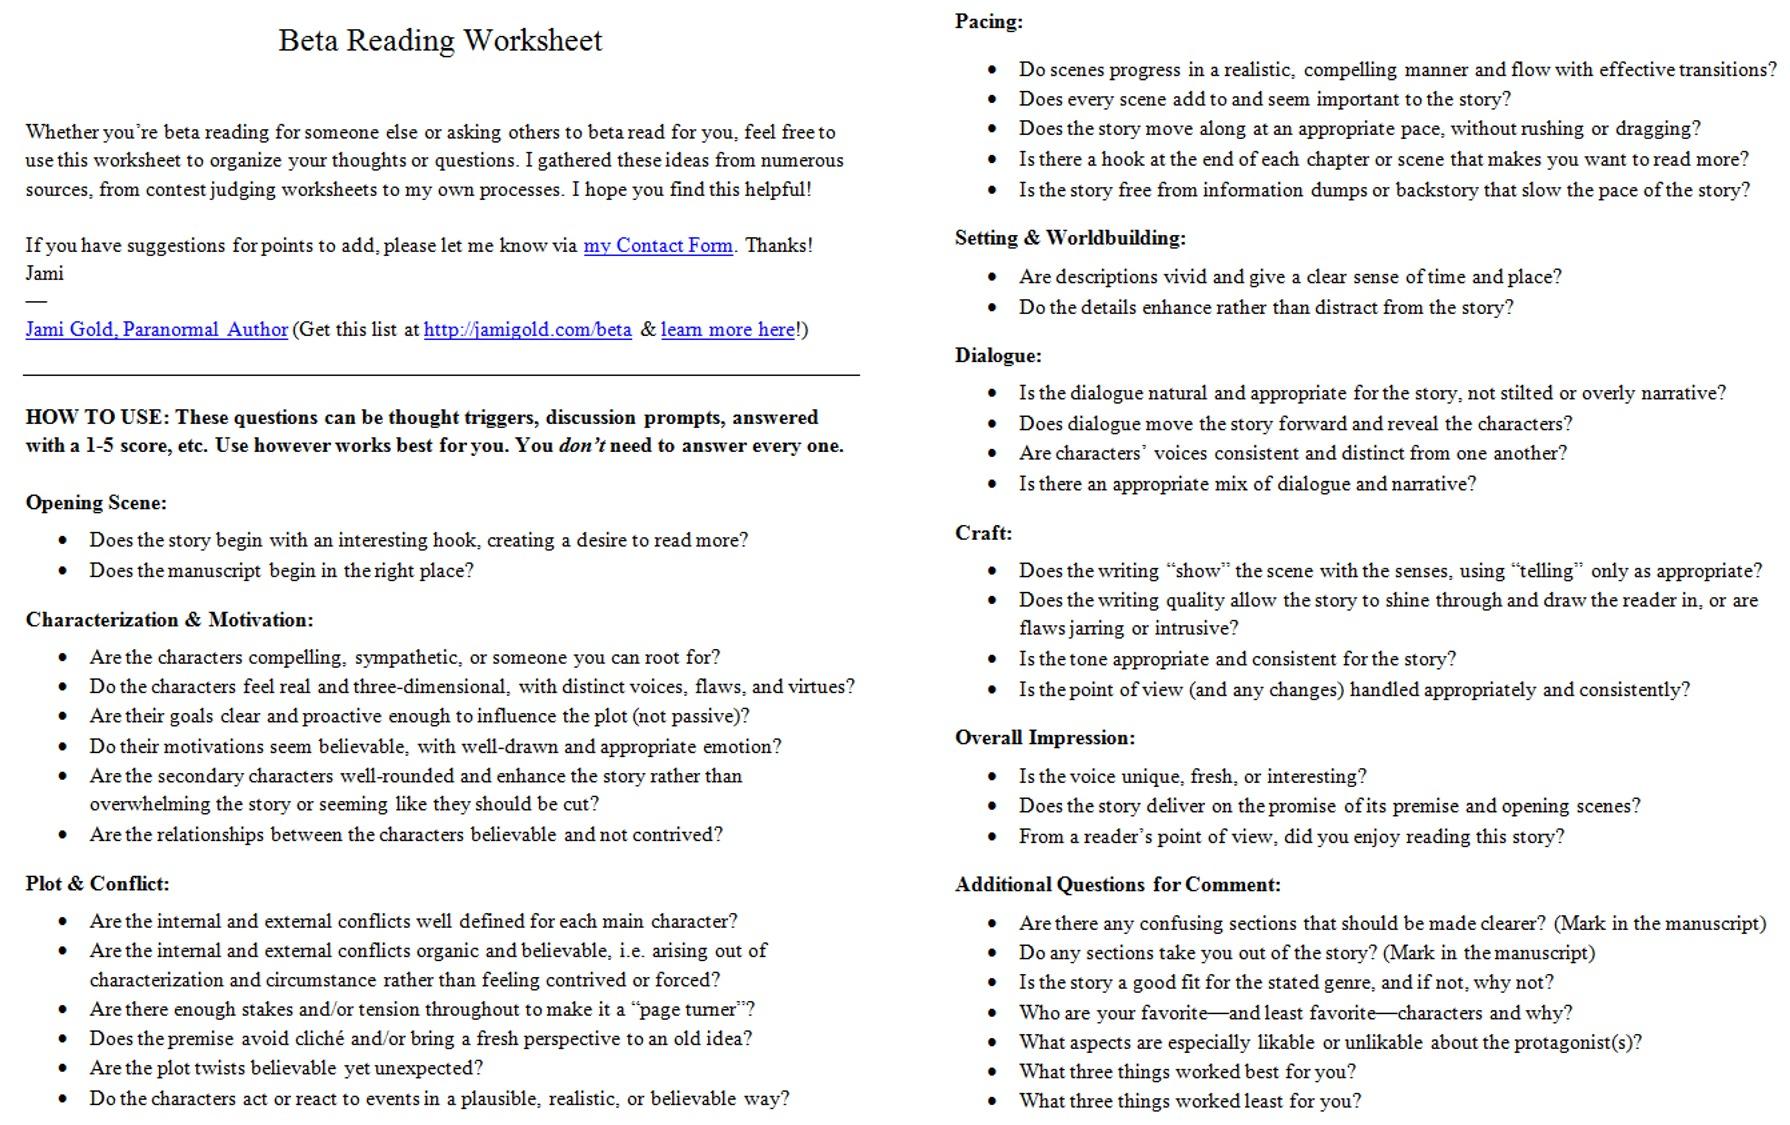 Aldiablosus  Mesmerizing Worksheets For Writers  Jami Gold Paranormal Author With Glamorous Screen Shot Of The Twopage Beta Reading Worksheet With Archaic Making Generalizations Worksheet Also Rounding Up Numbers Worksheets In Addition Worksheets Pythagorean Theorem And Singular Plural Possessive Nouns Worksheets As Well As Making Tracing Worksheets Additionally  More Than Worksheet From Jamigoldcom With Aldiablosus  Glamorous Worksheets For Writers  Jami Gold Paranormal Author With Archaic Screen Shot Of The Twopage Beta Reading Worksheet And Mesmerizing Making Generalizations Worksheet Also Rounding Up Numbers Worksheets In Addition Worksheets Pythagorean Theorem From Jamigoldcom